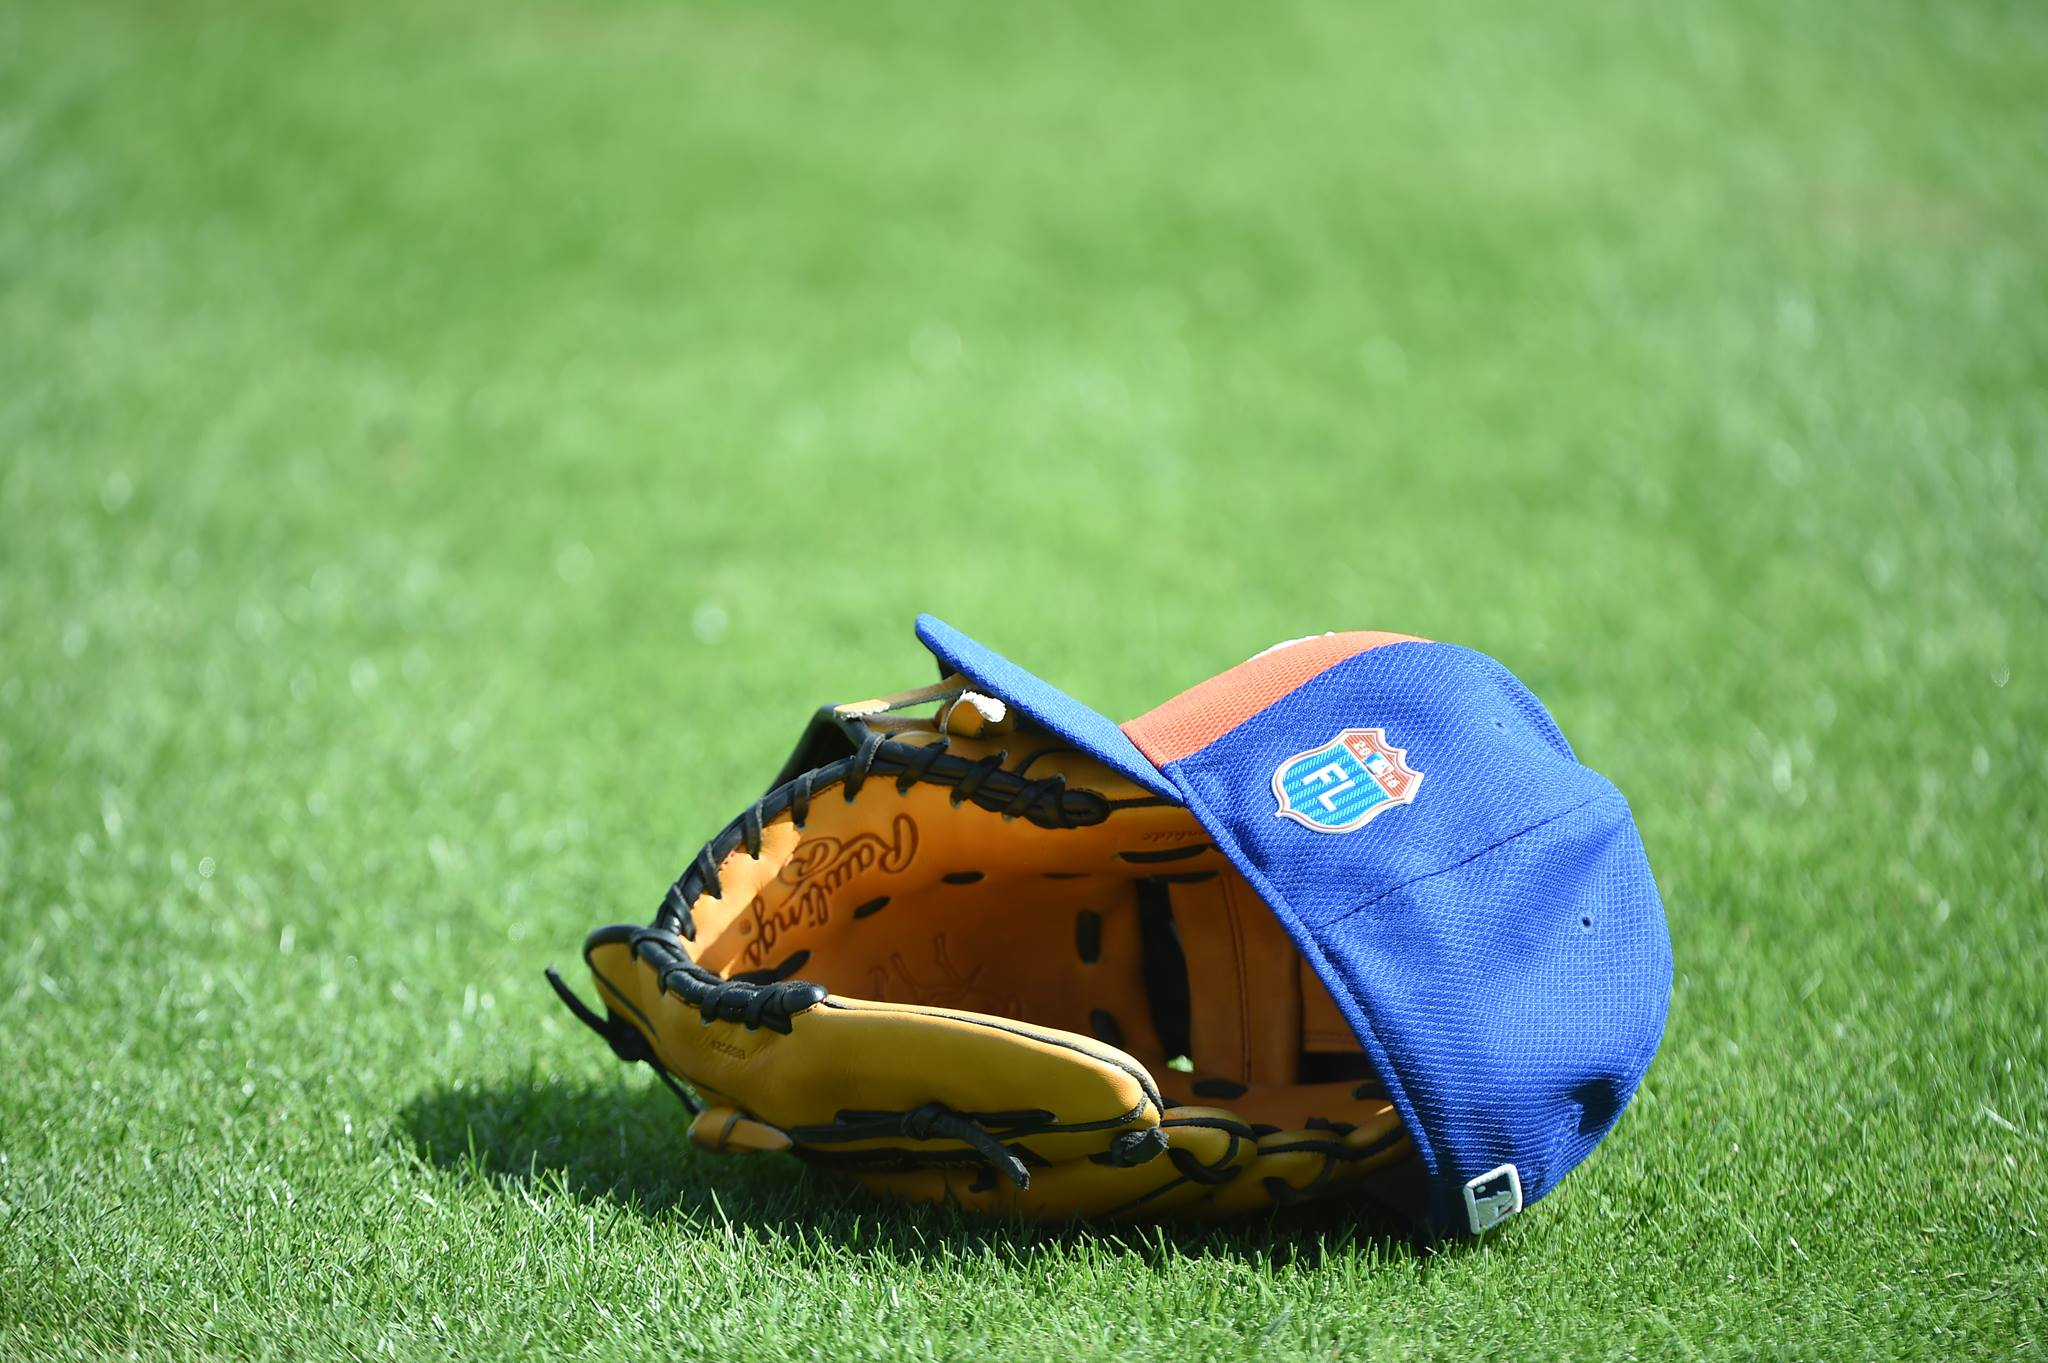 Hopeful for the New York baseball teams, the WSN Sports Desk sets their predictions for the World Series.